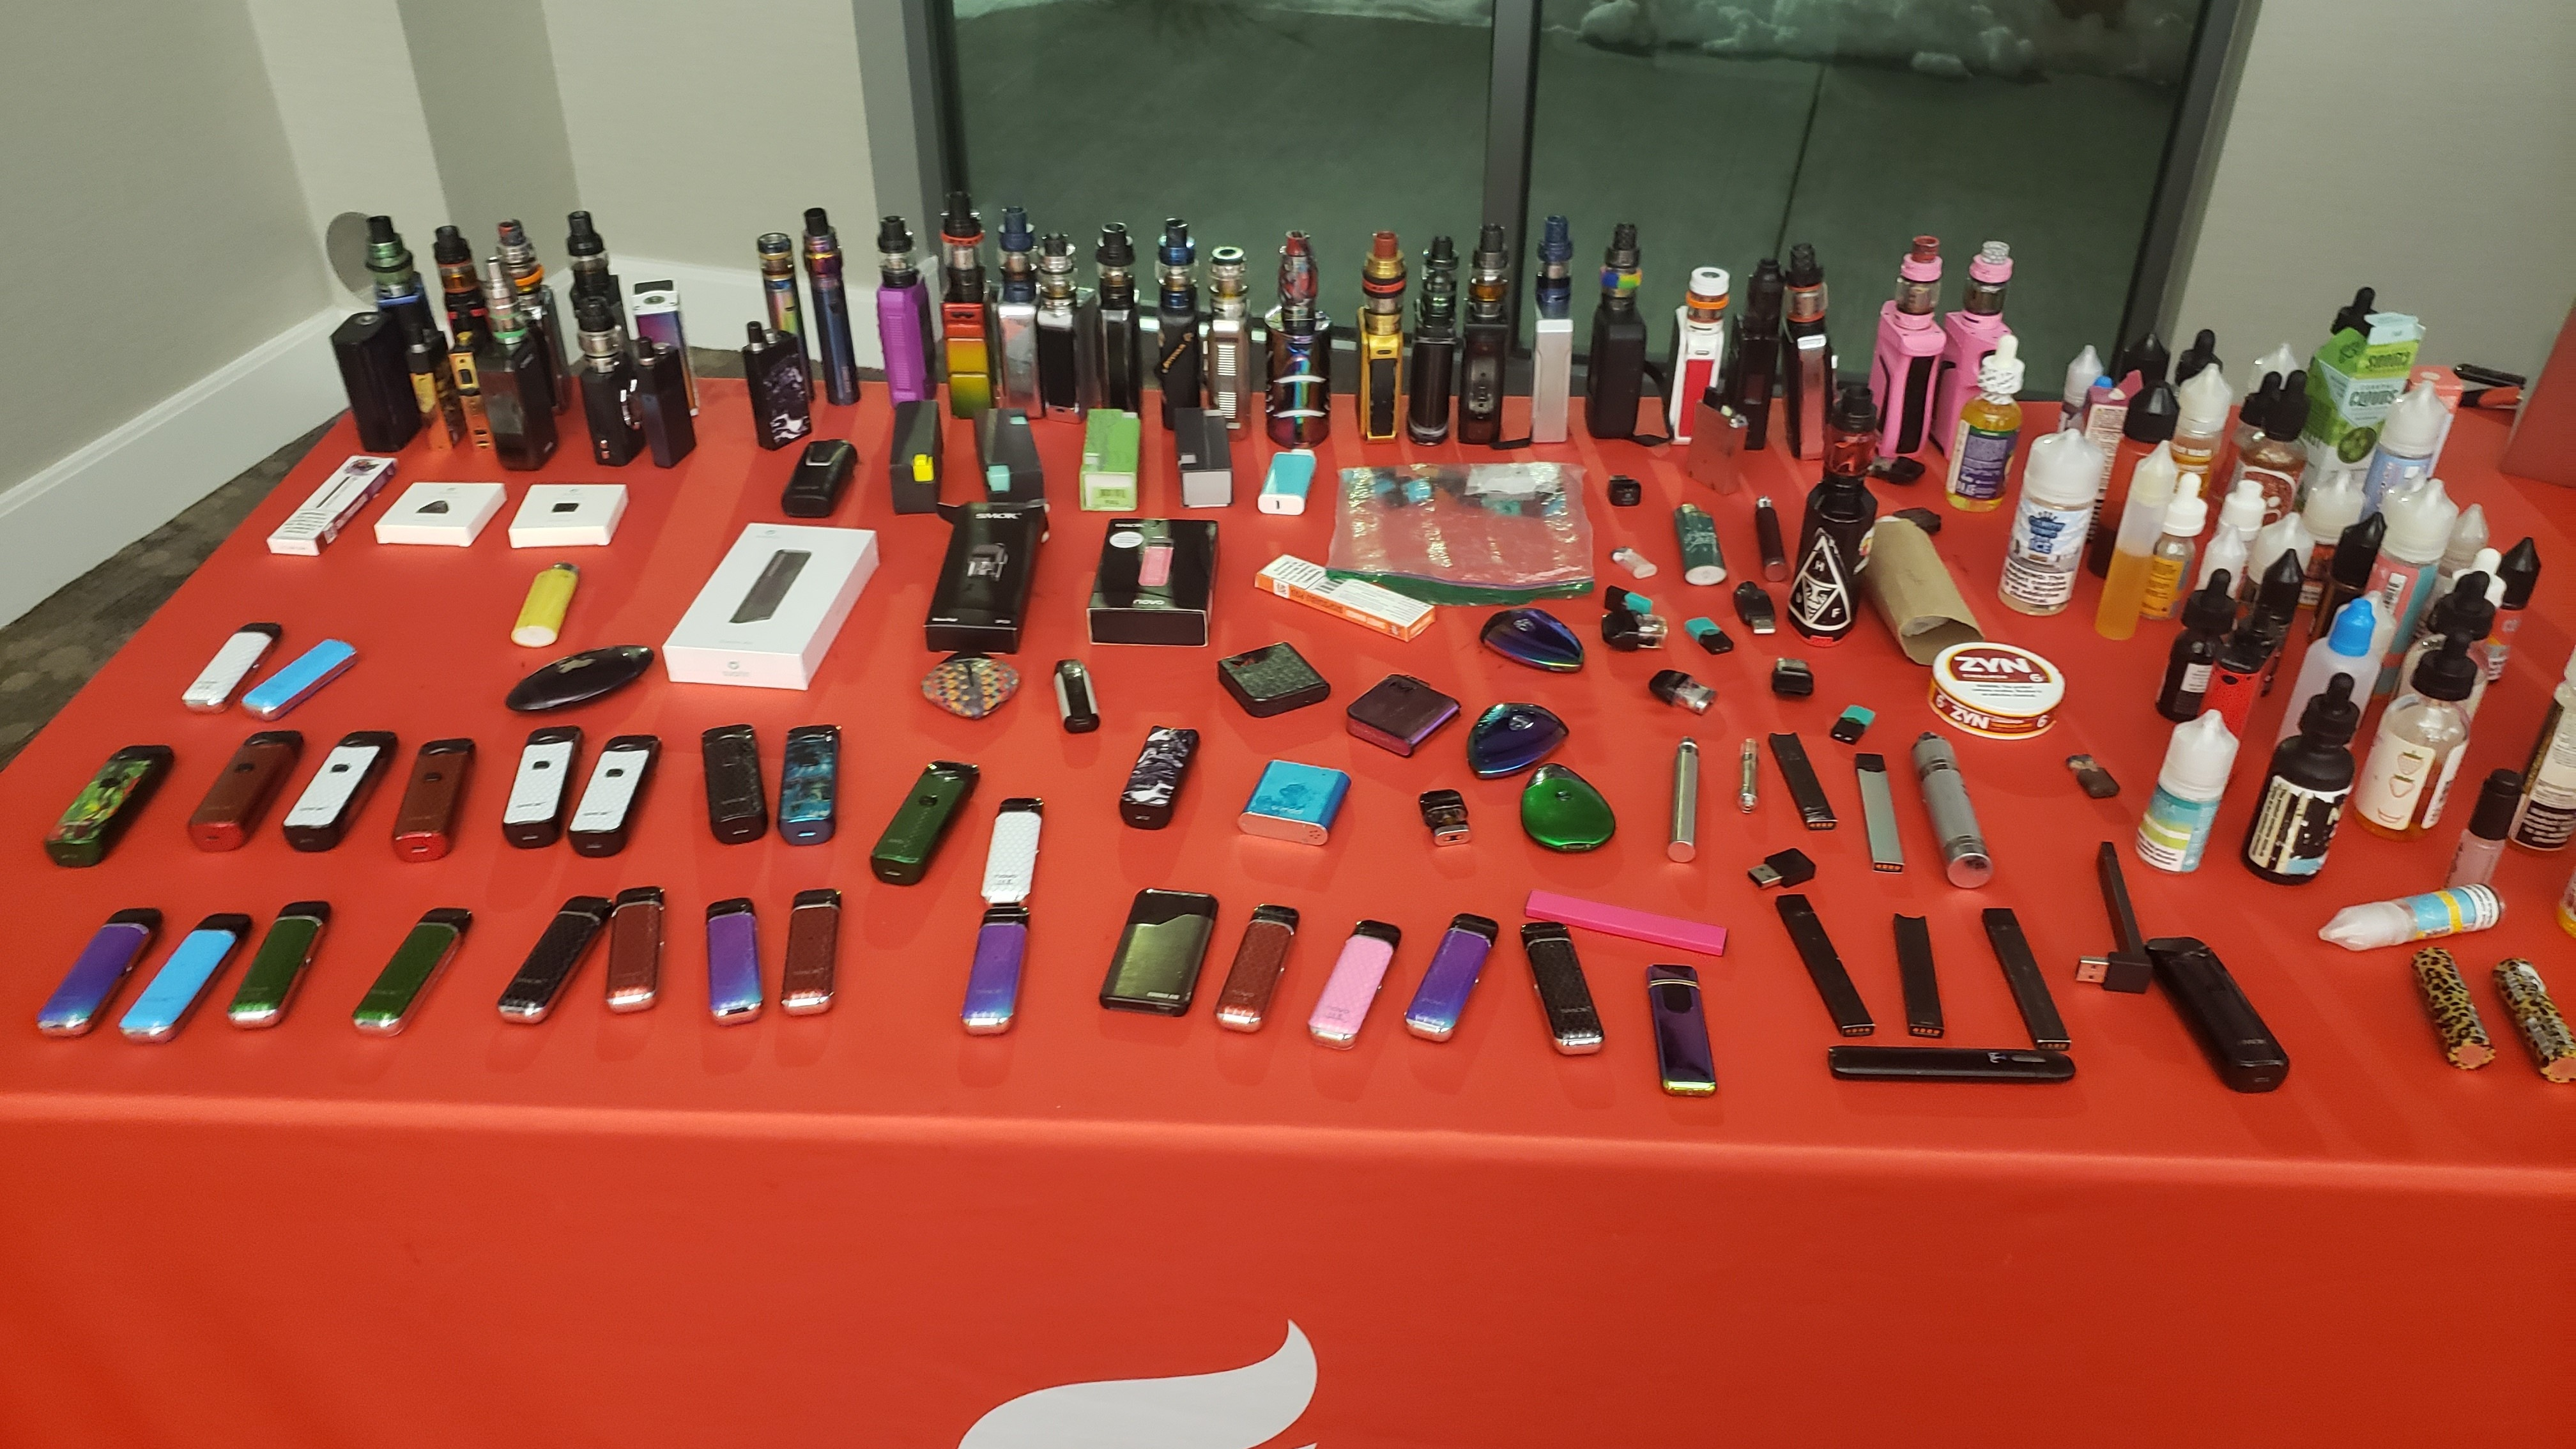 A table with a variety of e-cigarettes laid out to look at.